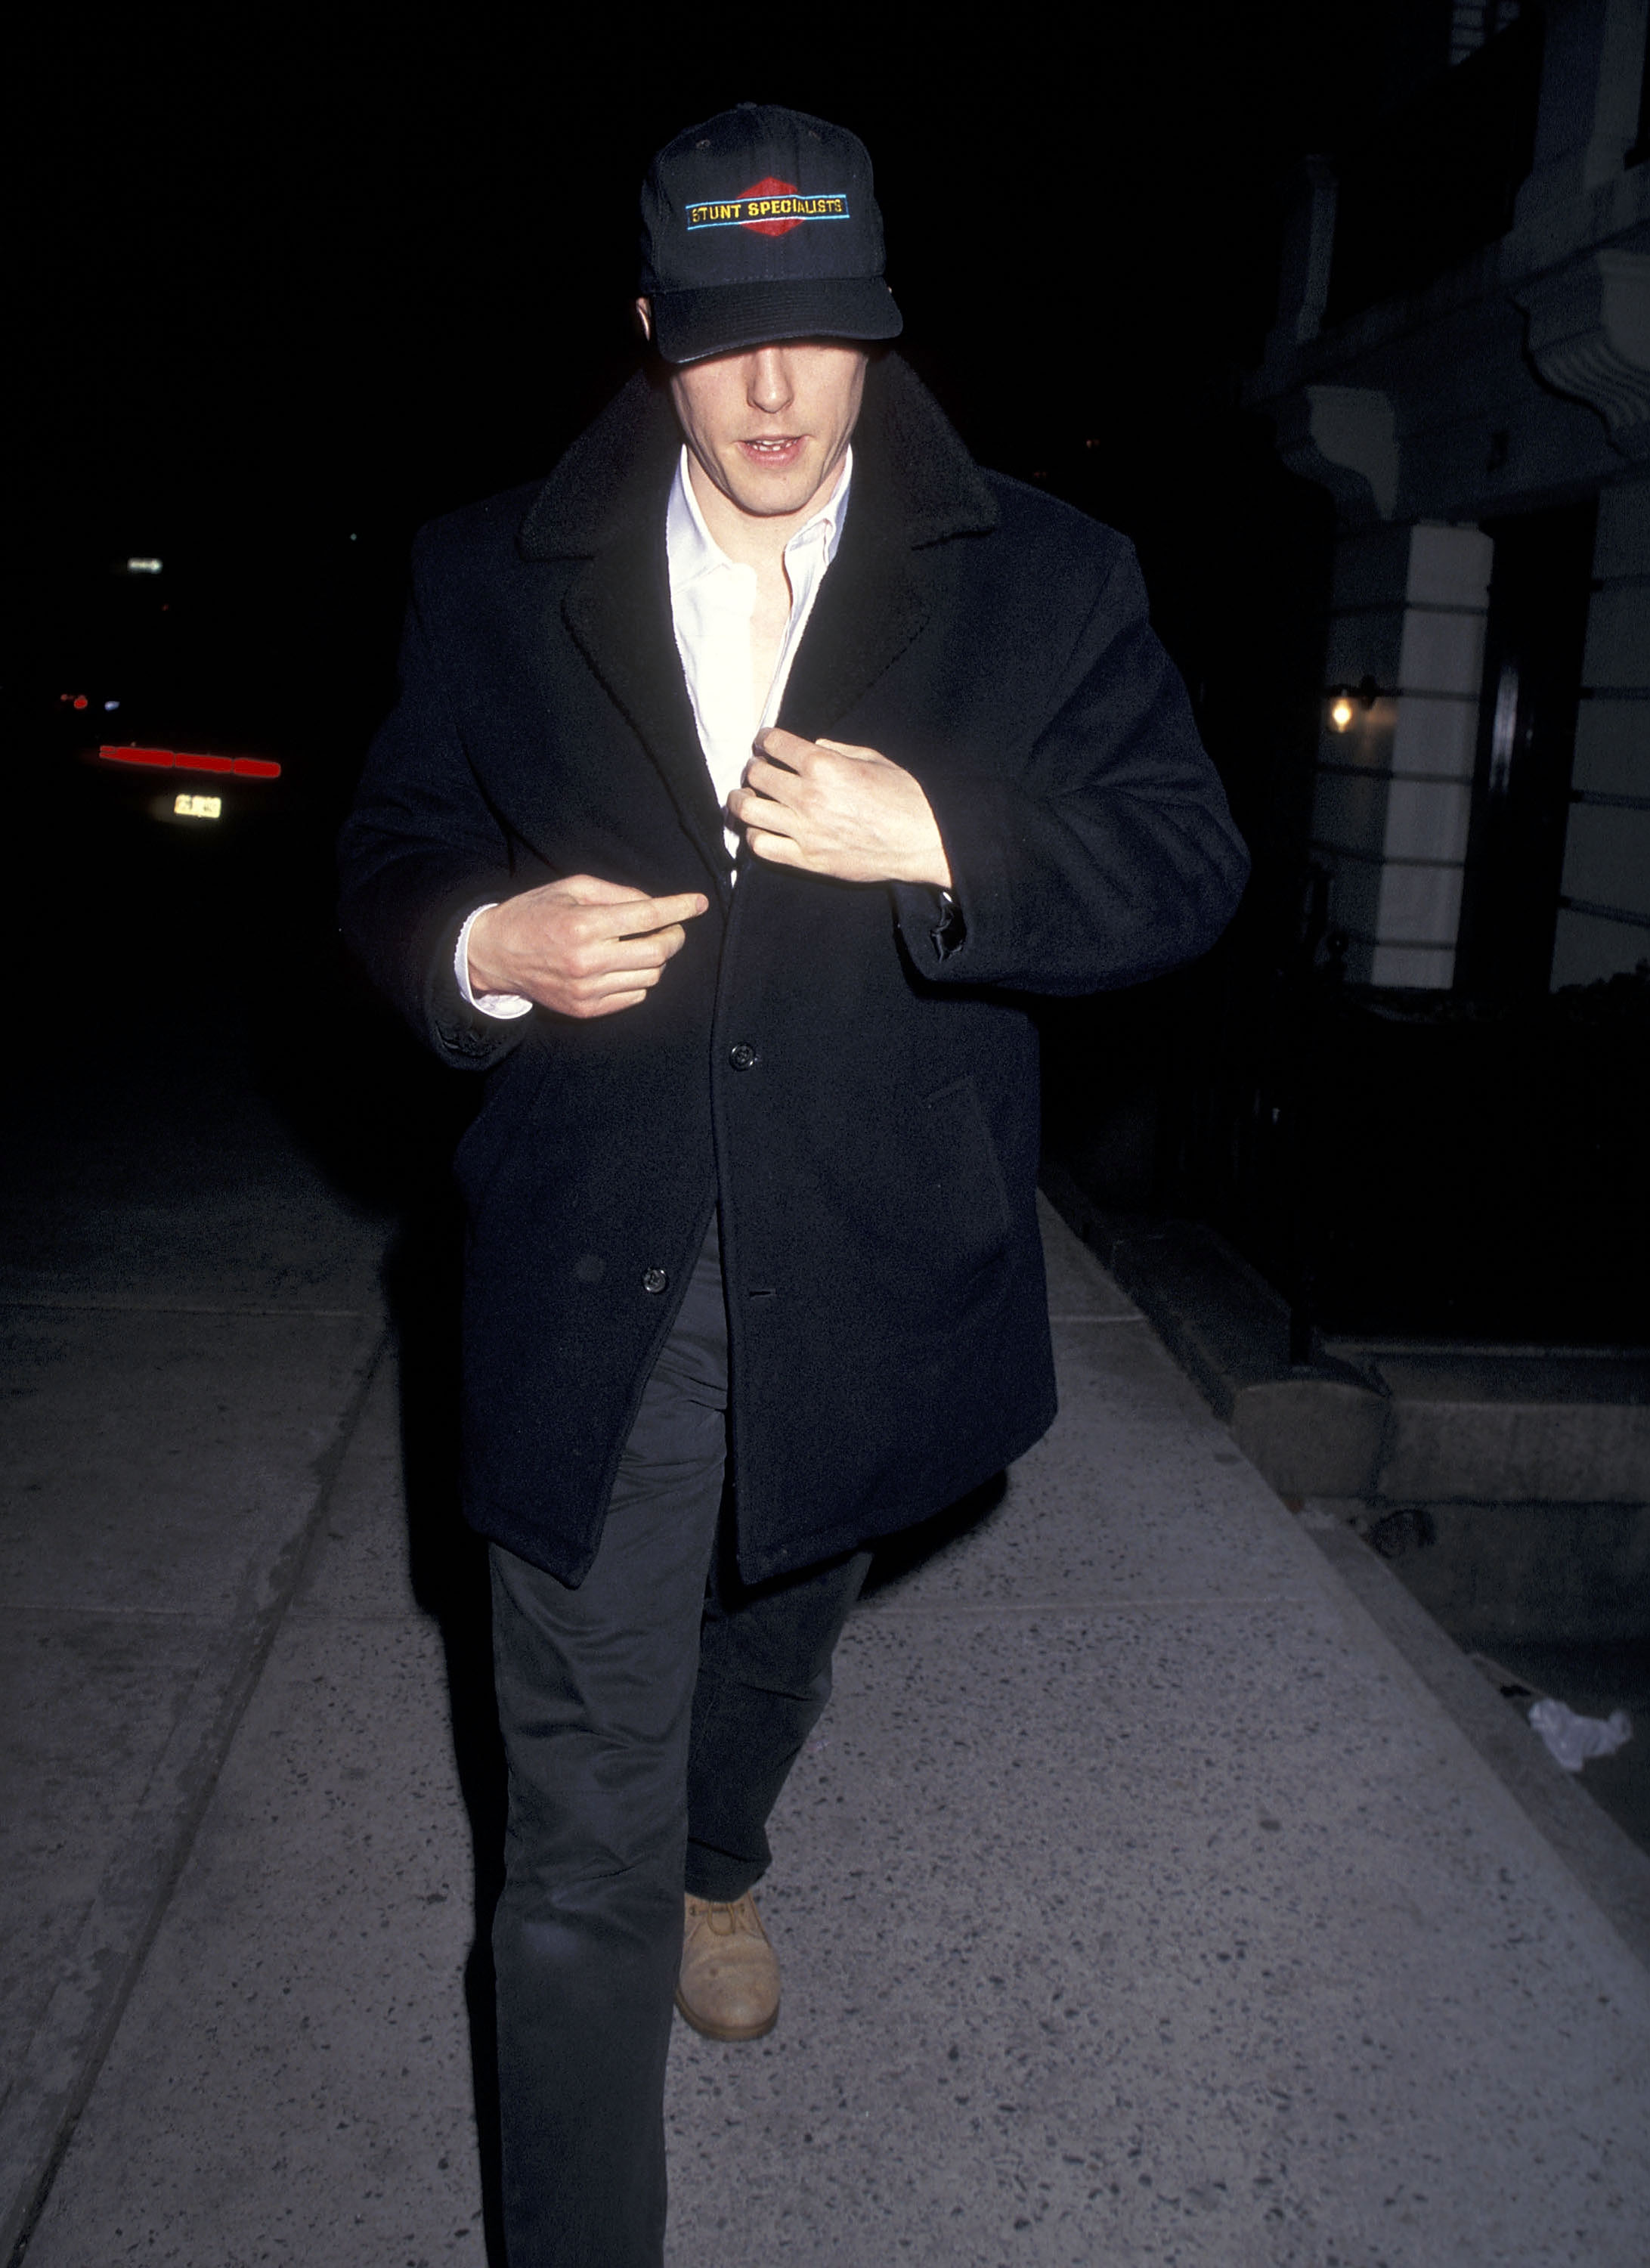 Actor Hugh Grant on April 11, 1996 walking on Madison Avenue in New York City. (Photo by )